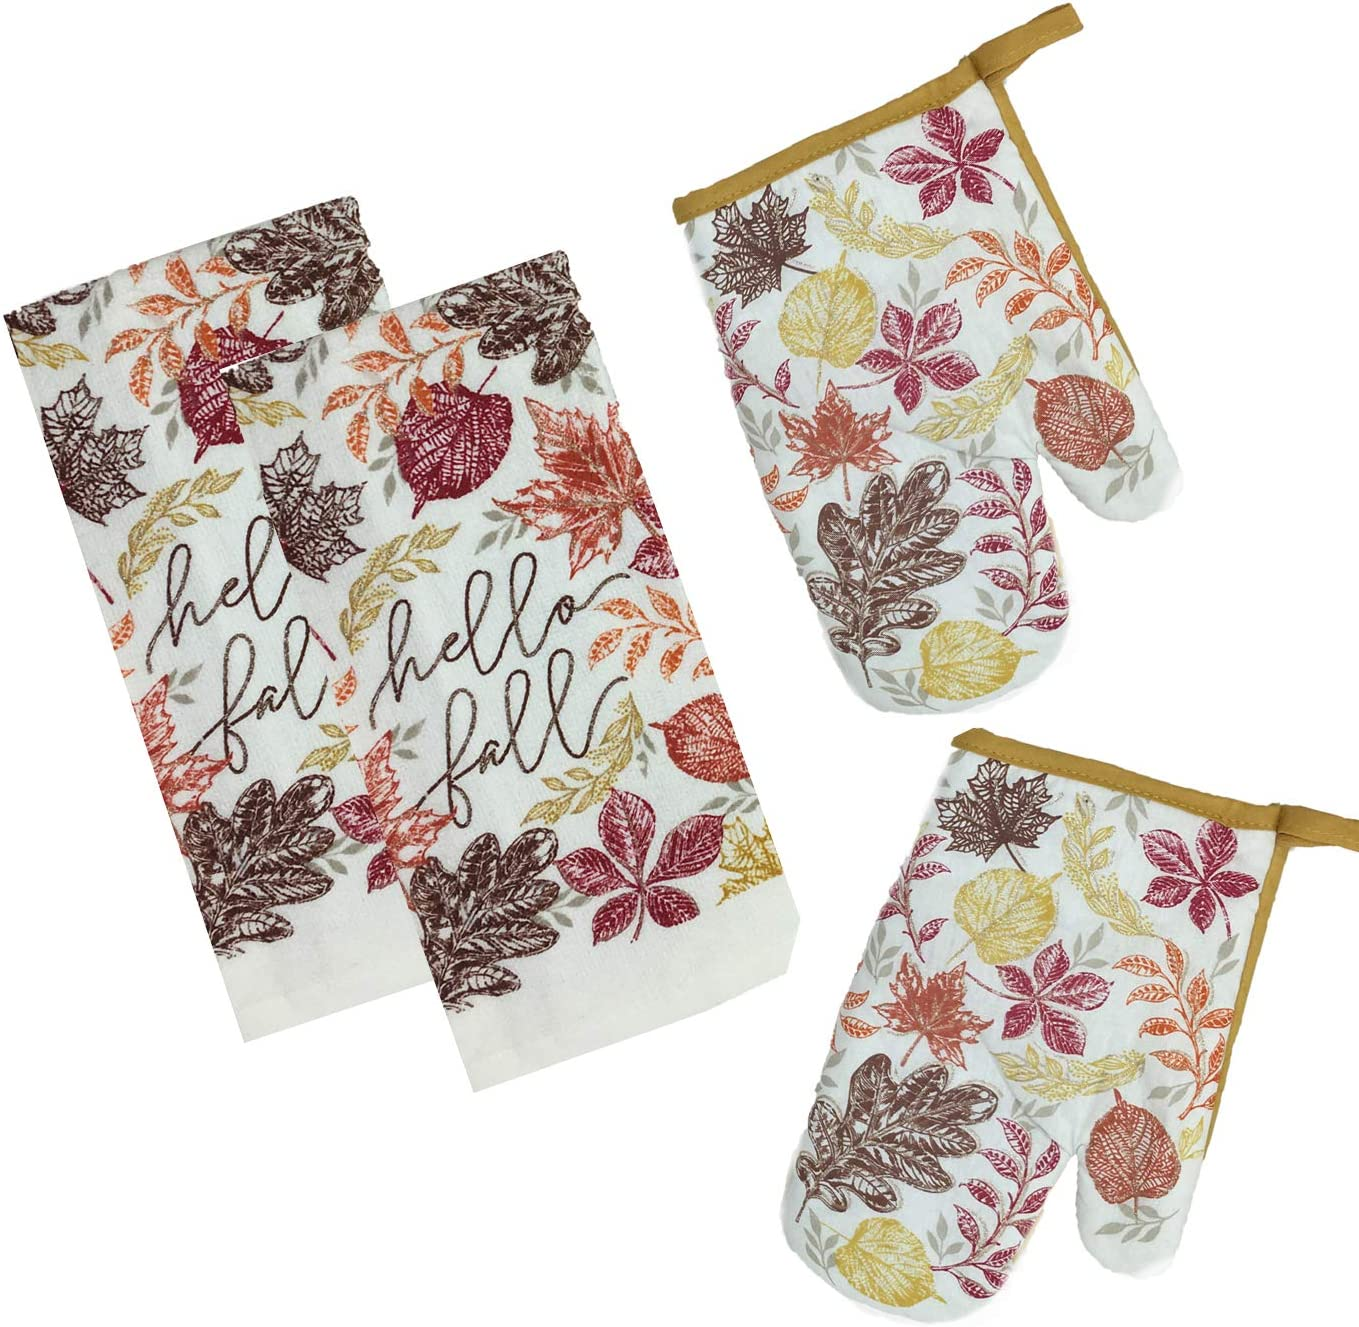 Fall Harvest Thanksgiving Kitchen Towels and Oven Mitts - Bundle of 4 Items: 2 Dish Towels and 2 Oven Mitts (Glitter Leaves-Hello Fall)